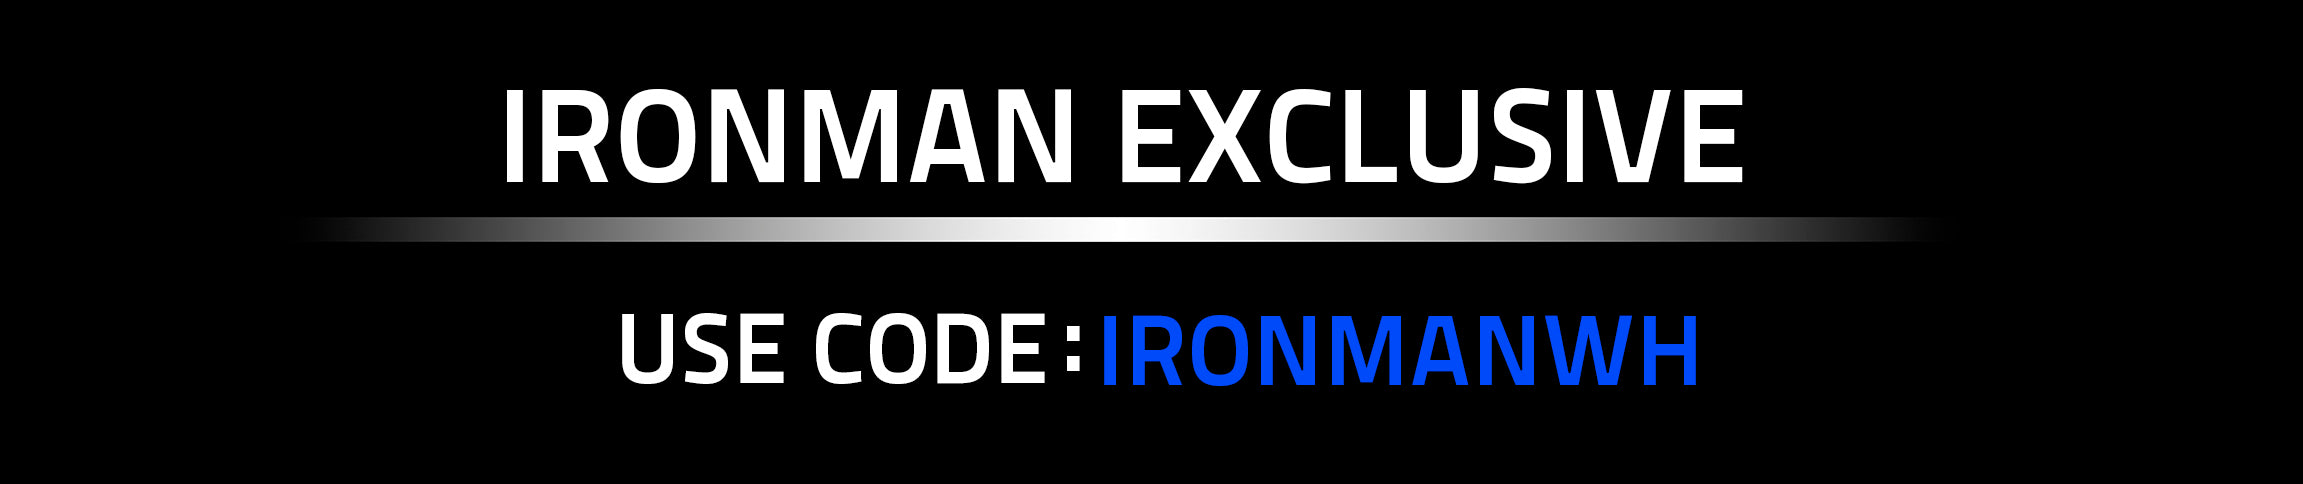 ironman exclusives